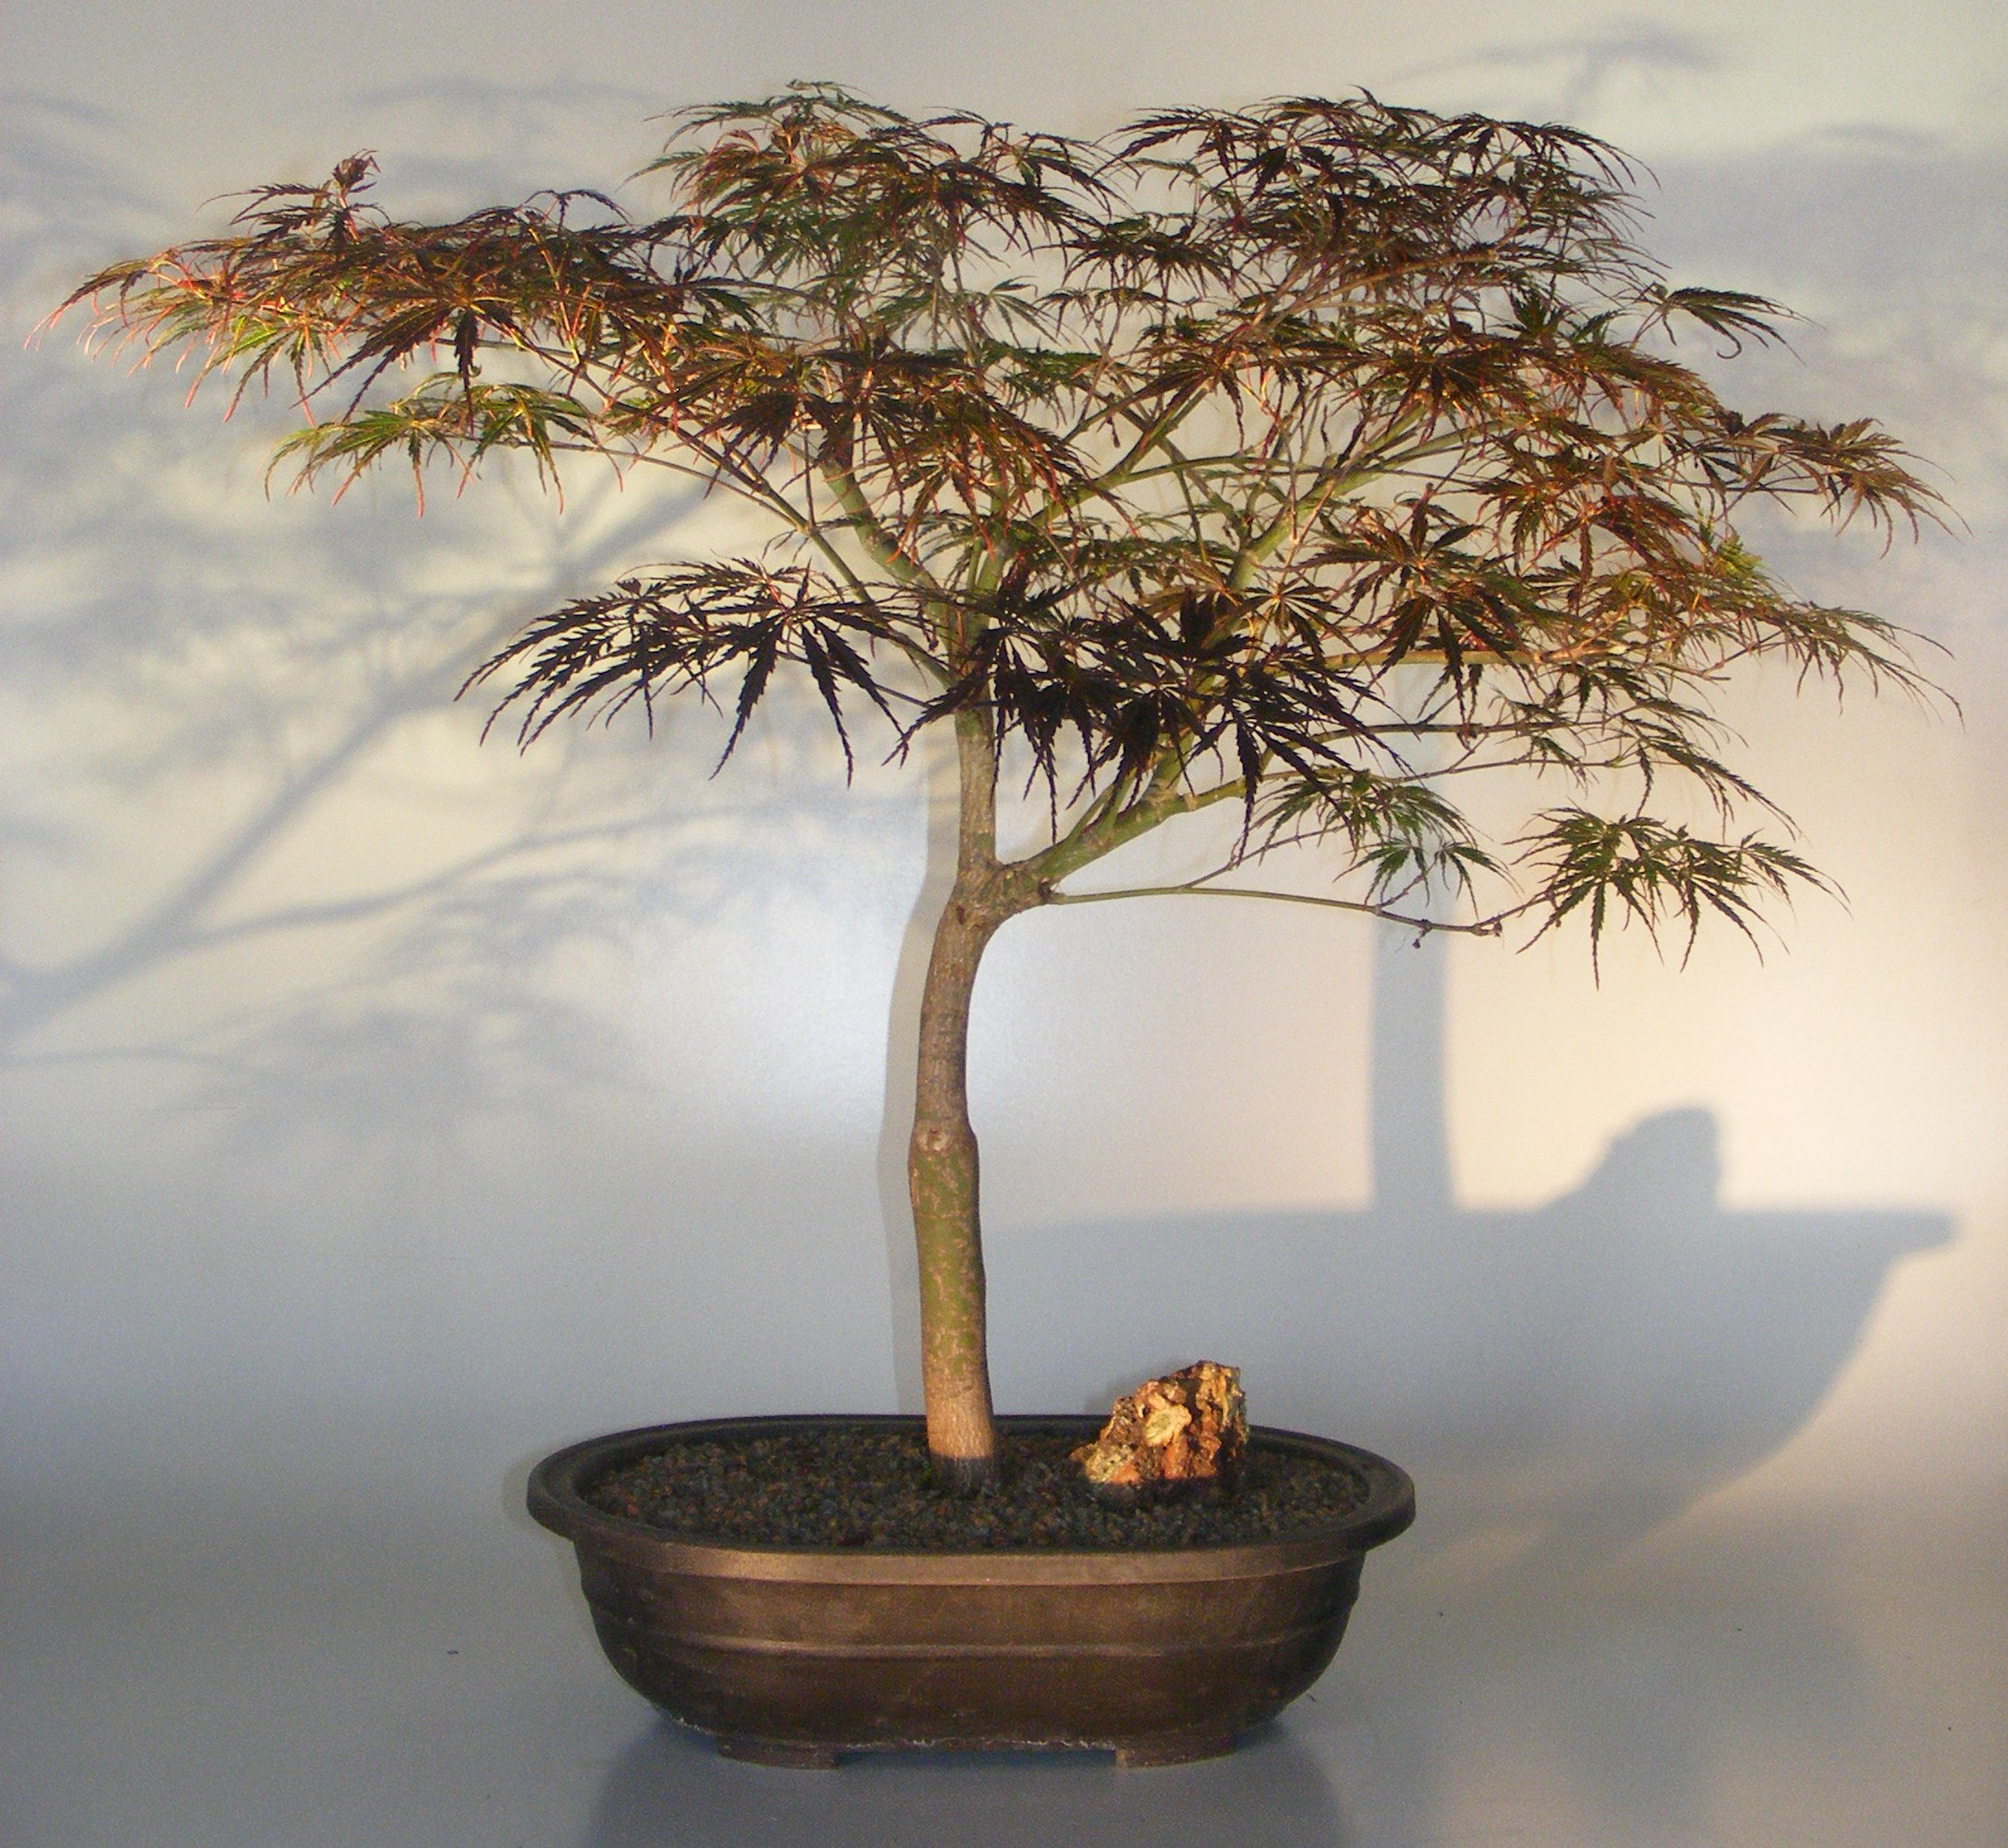 Japanese Red Maple Bonsai Tree(acer palmatum 'red feather') Image